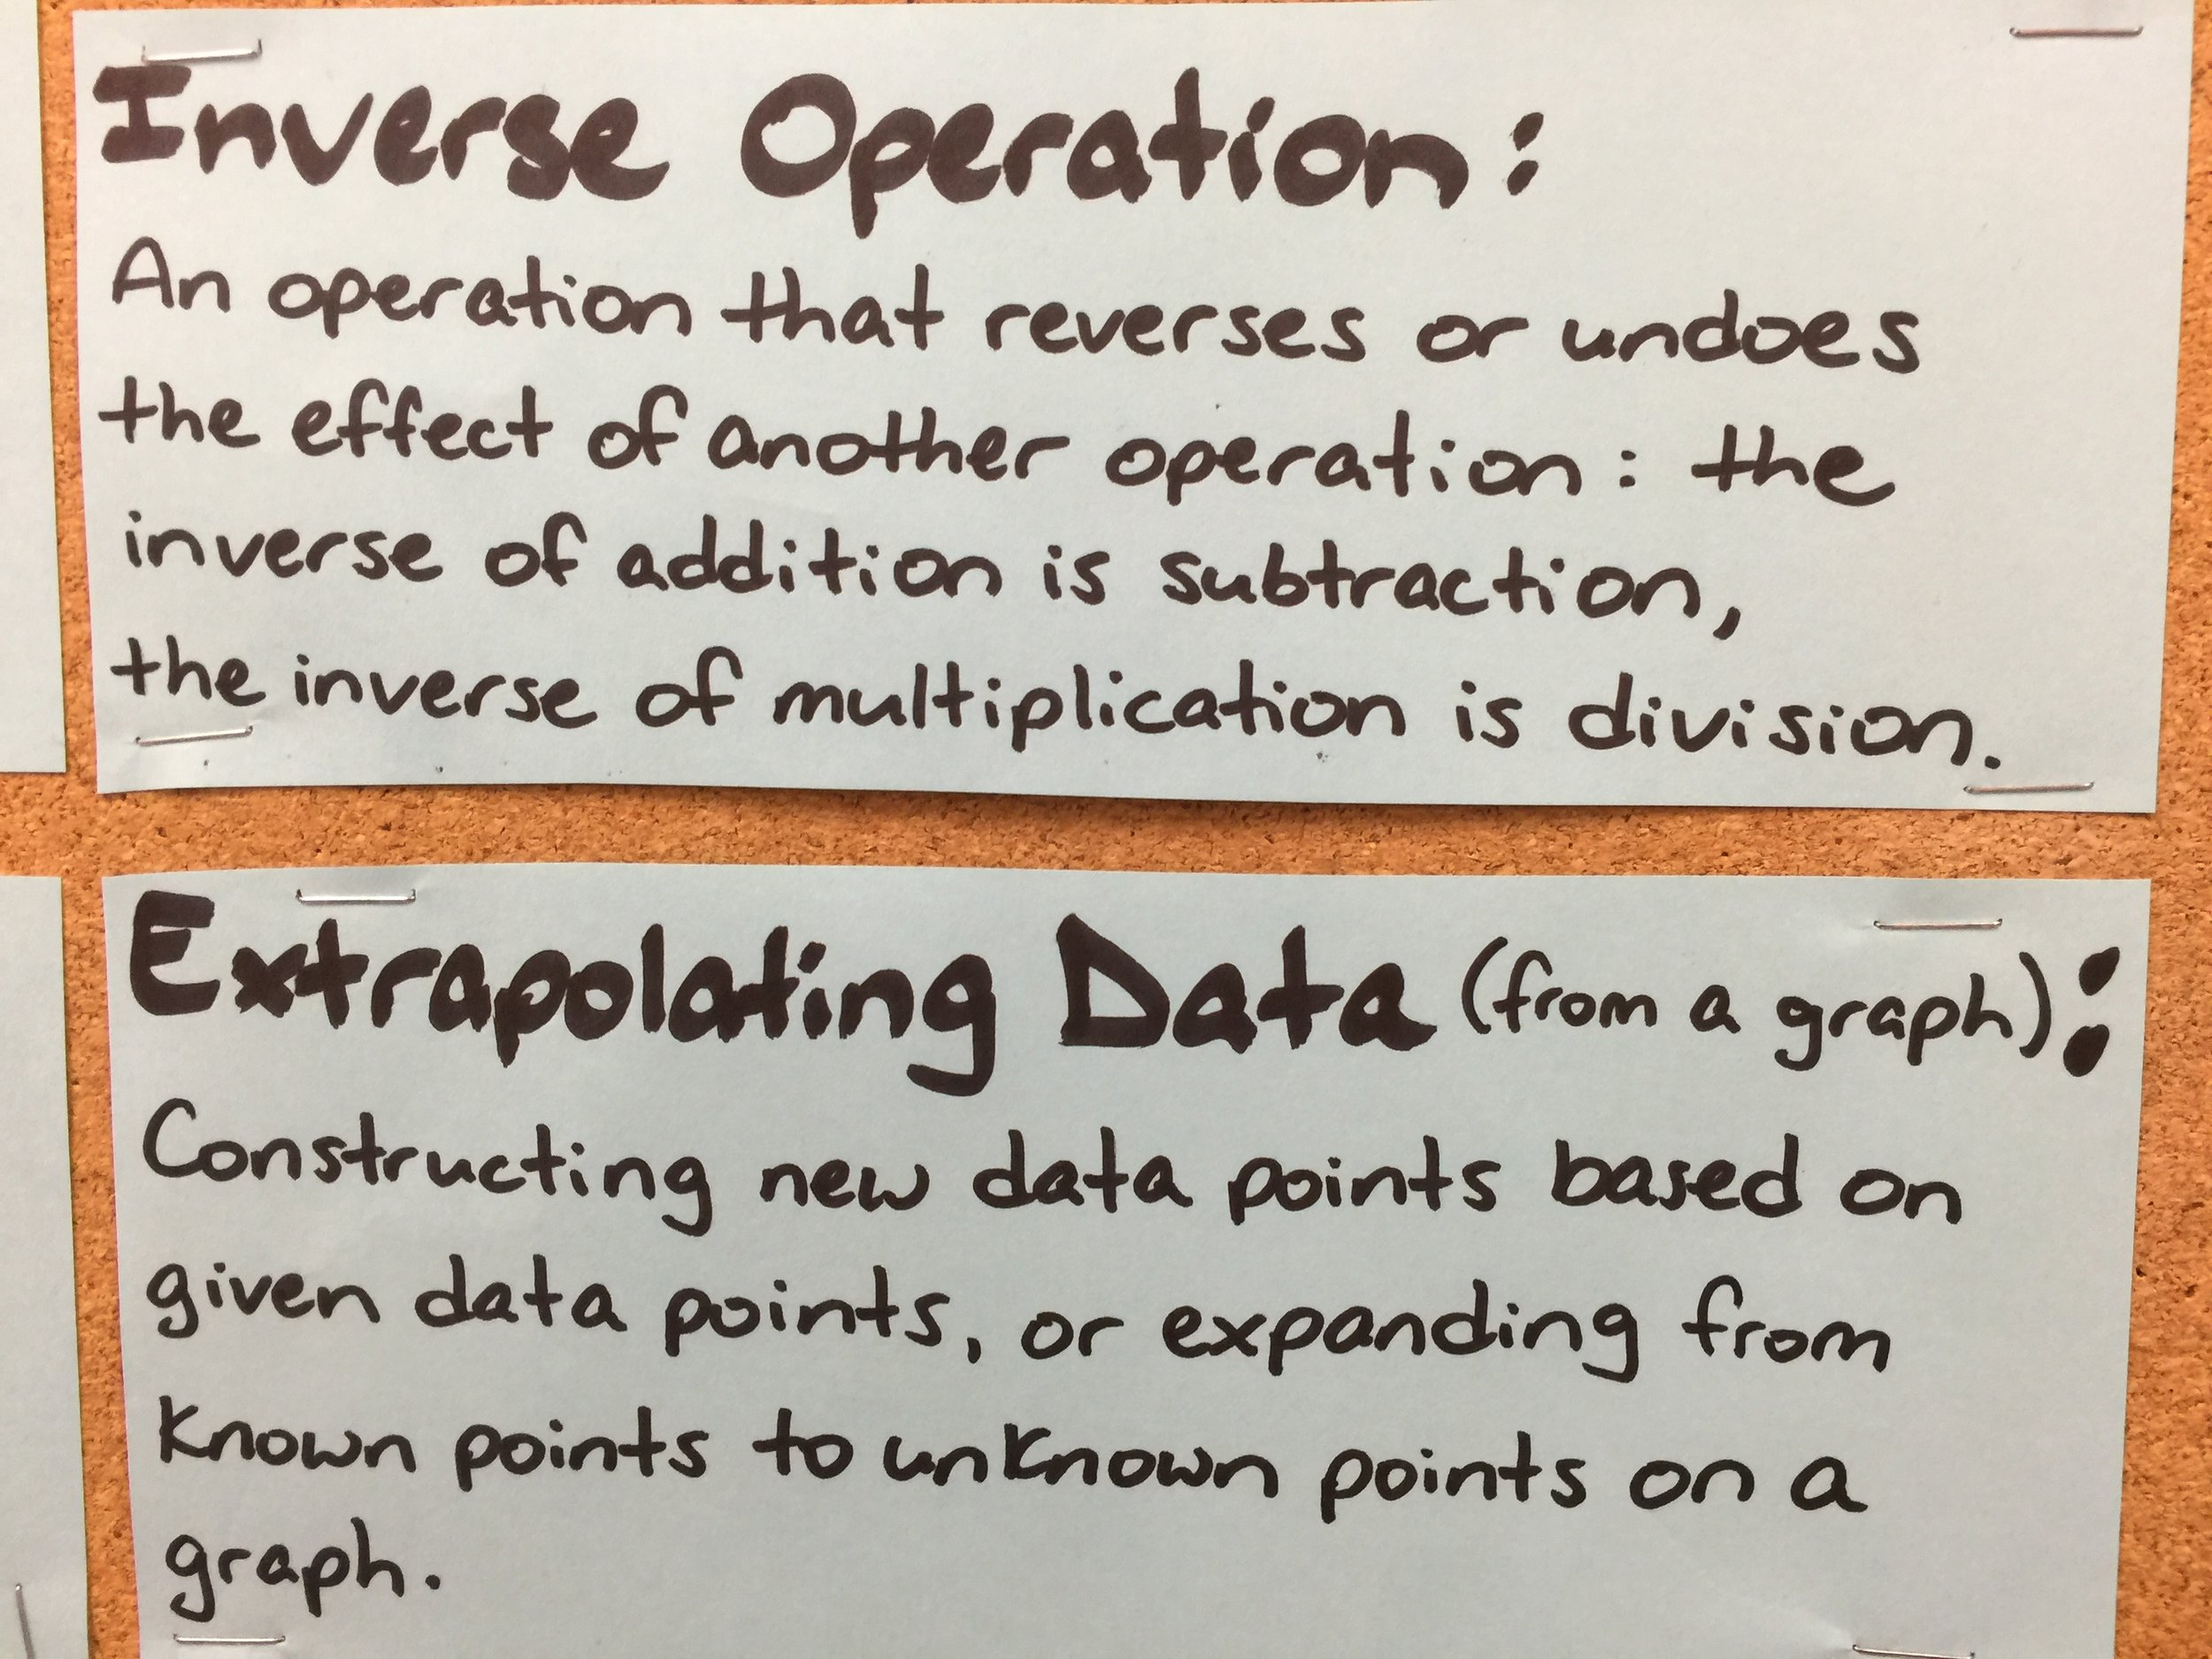 inverse-operation-extrapolating-data.jpg